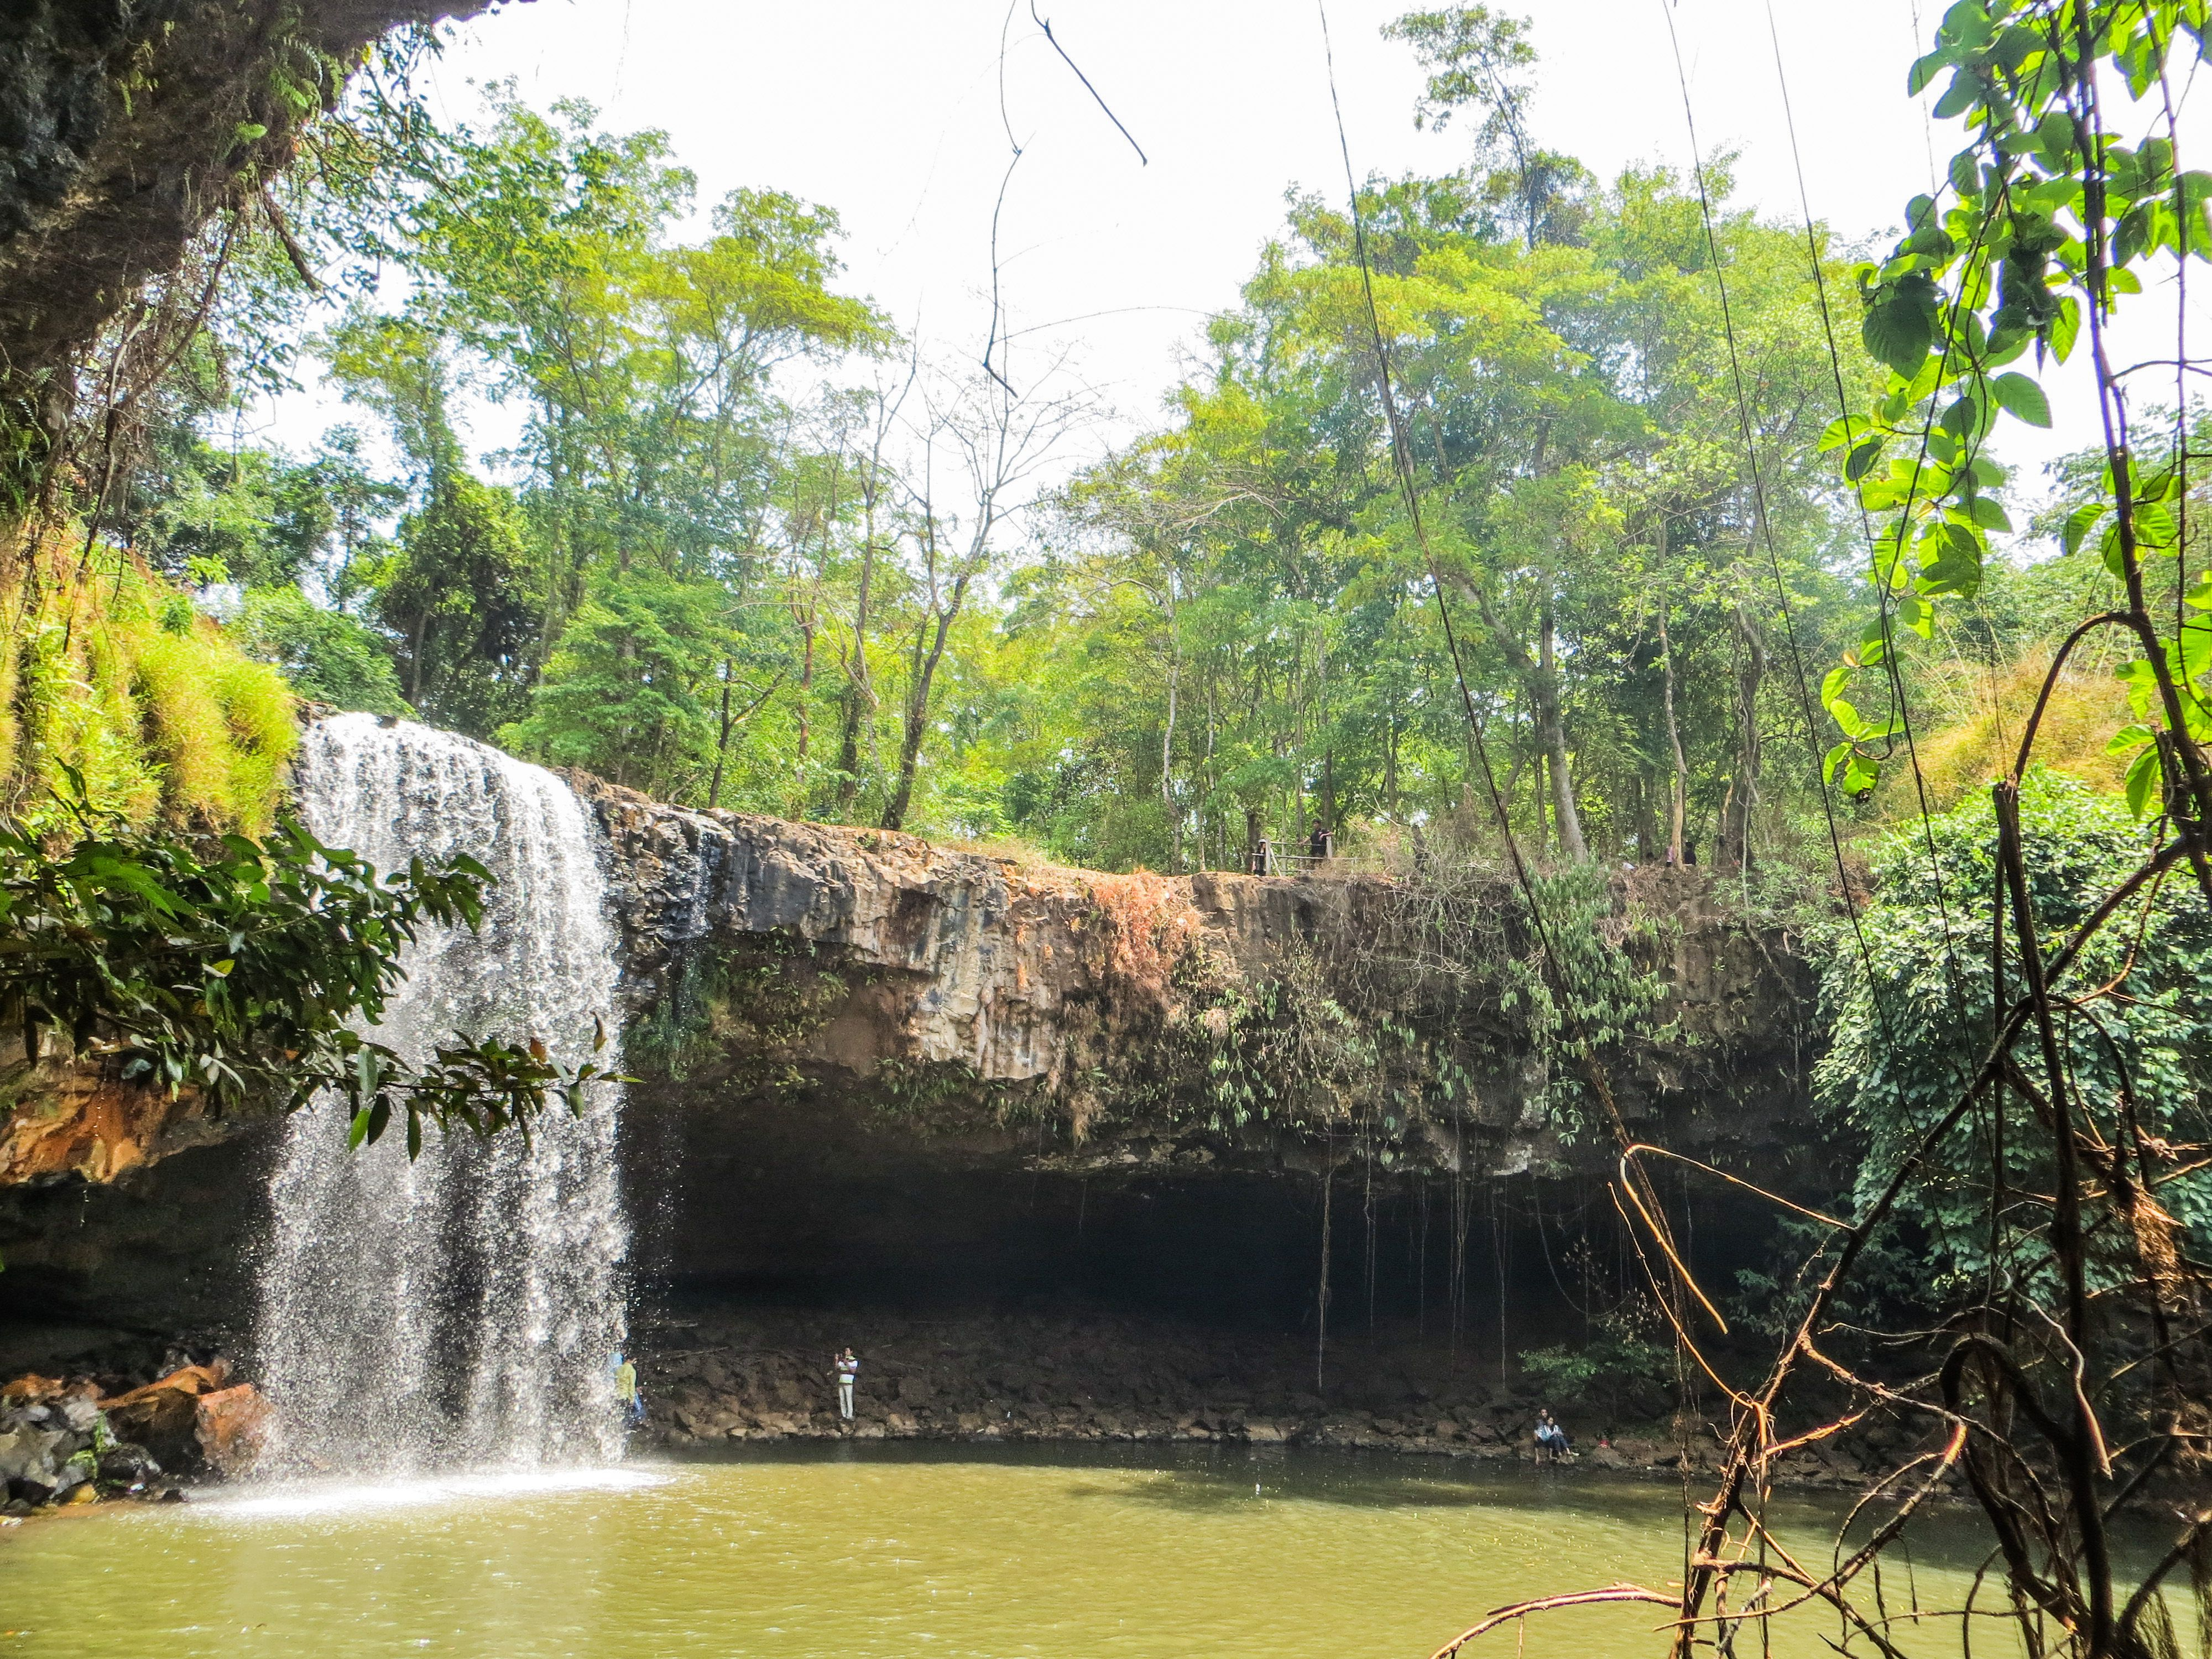 attraction-Cha Ong Waterfall 2.jpg